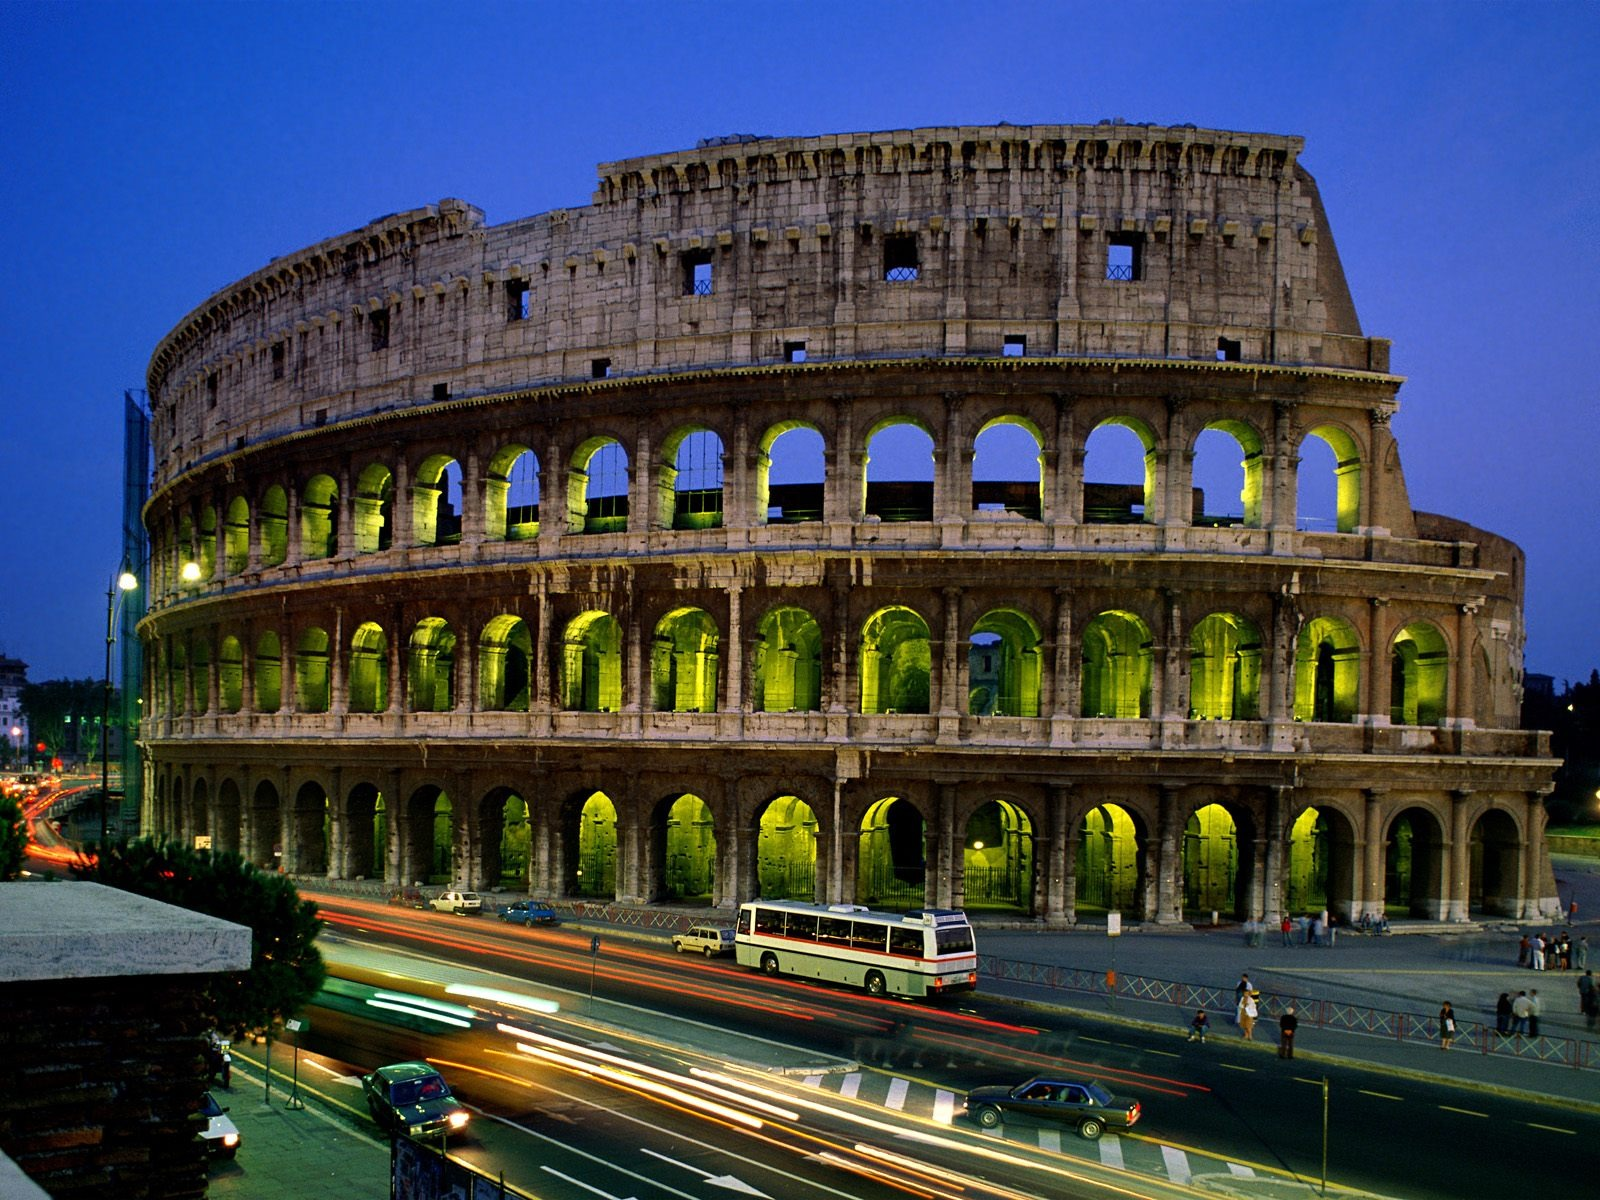 Wallpapers Of Italy Colosseum Wallpaper Italy World Wallpapers In Jpg Format For Free